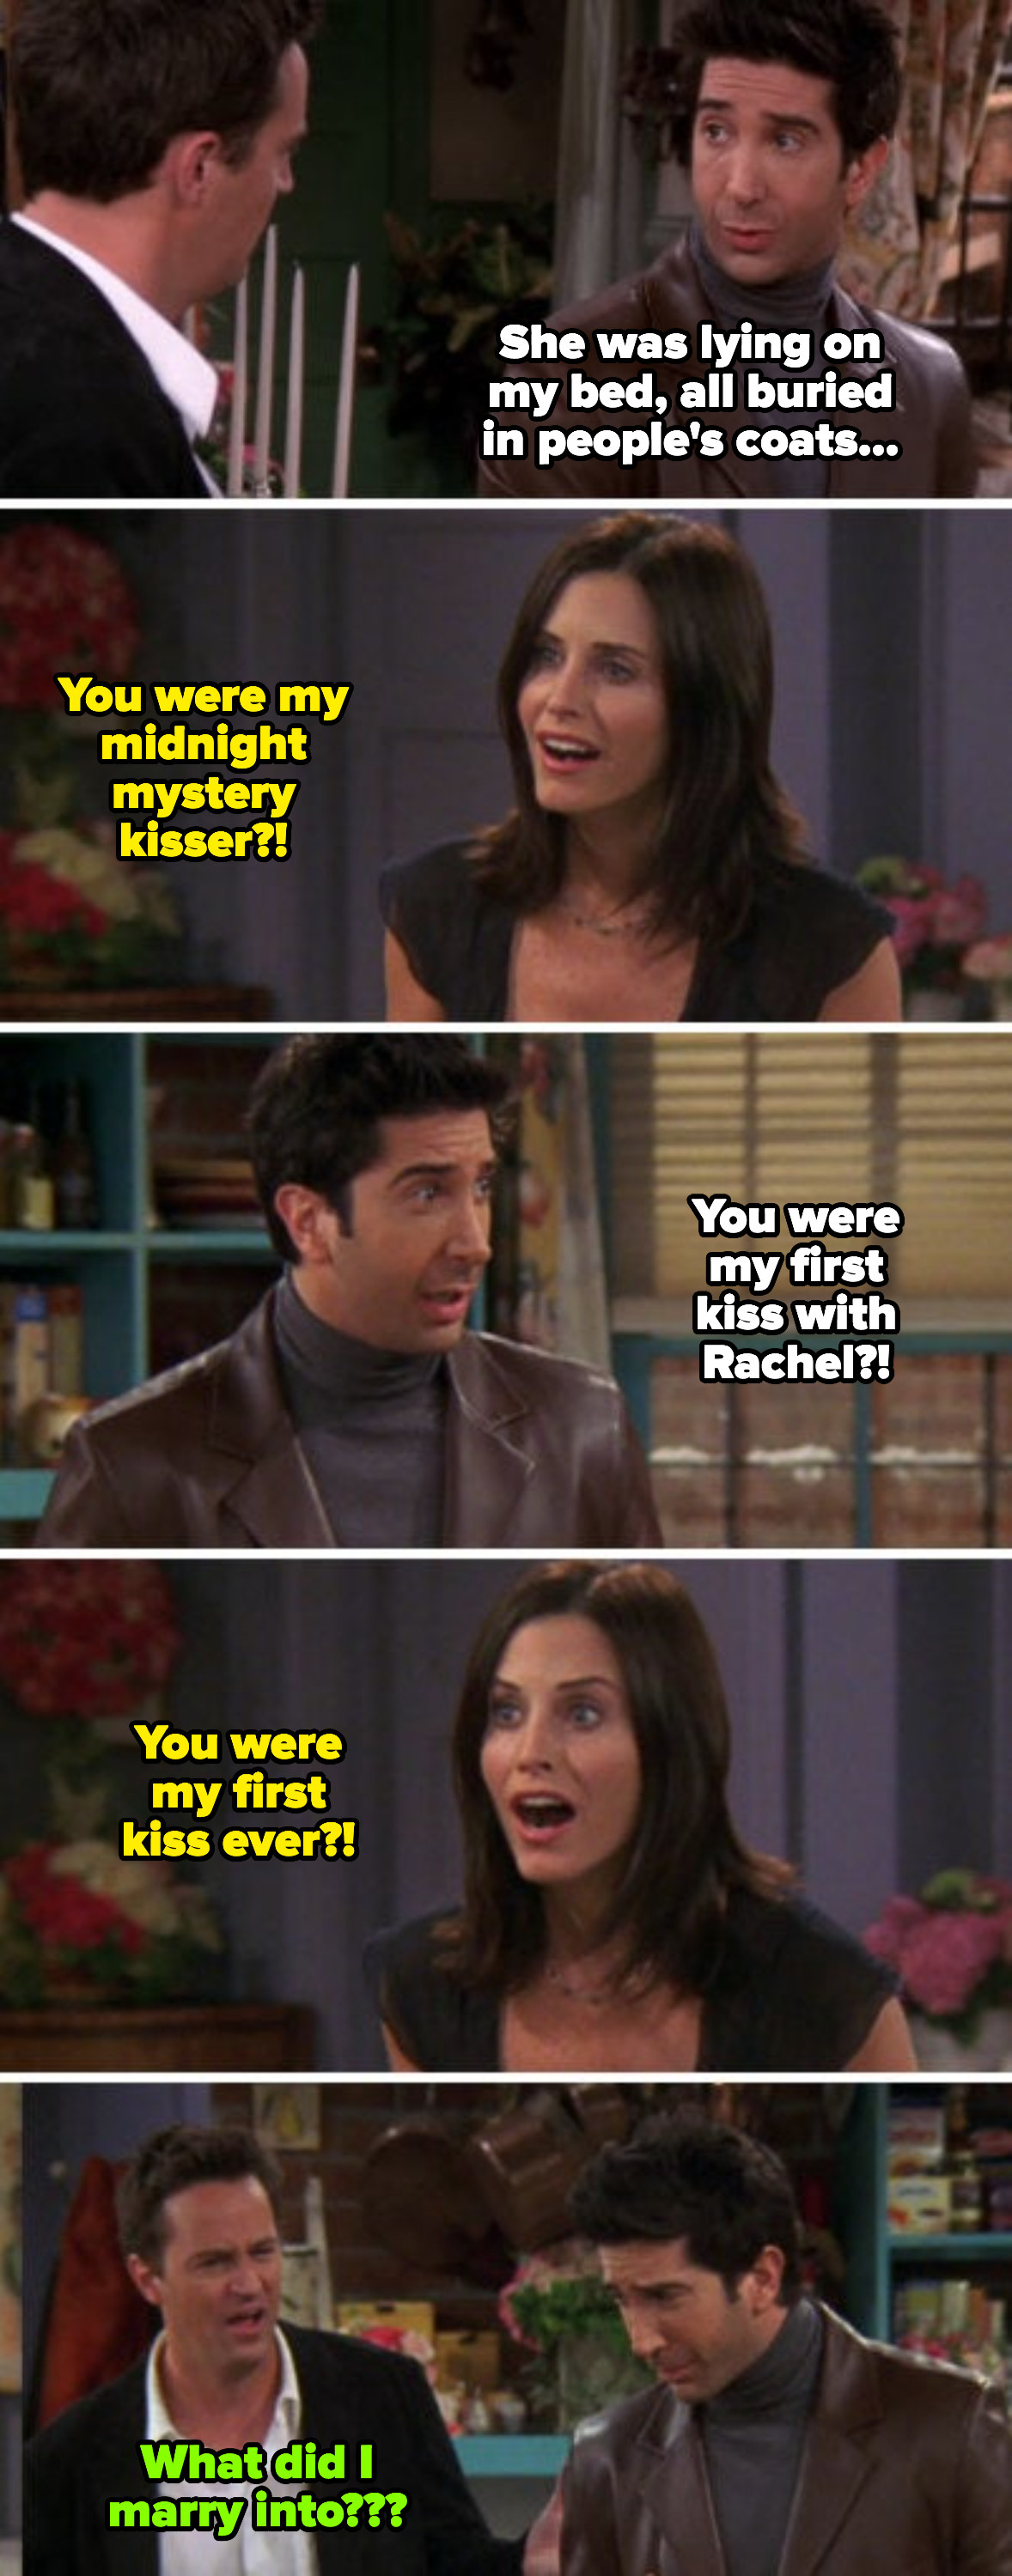 Monica and Ross realizing they were each other's first kisses